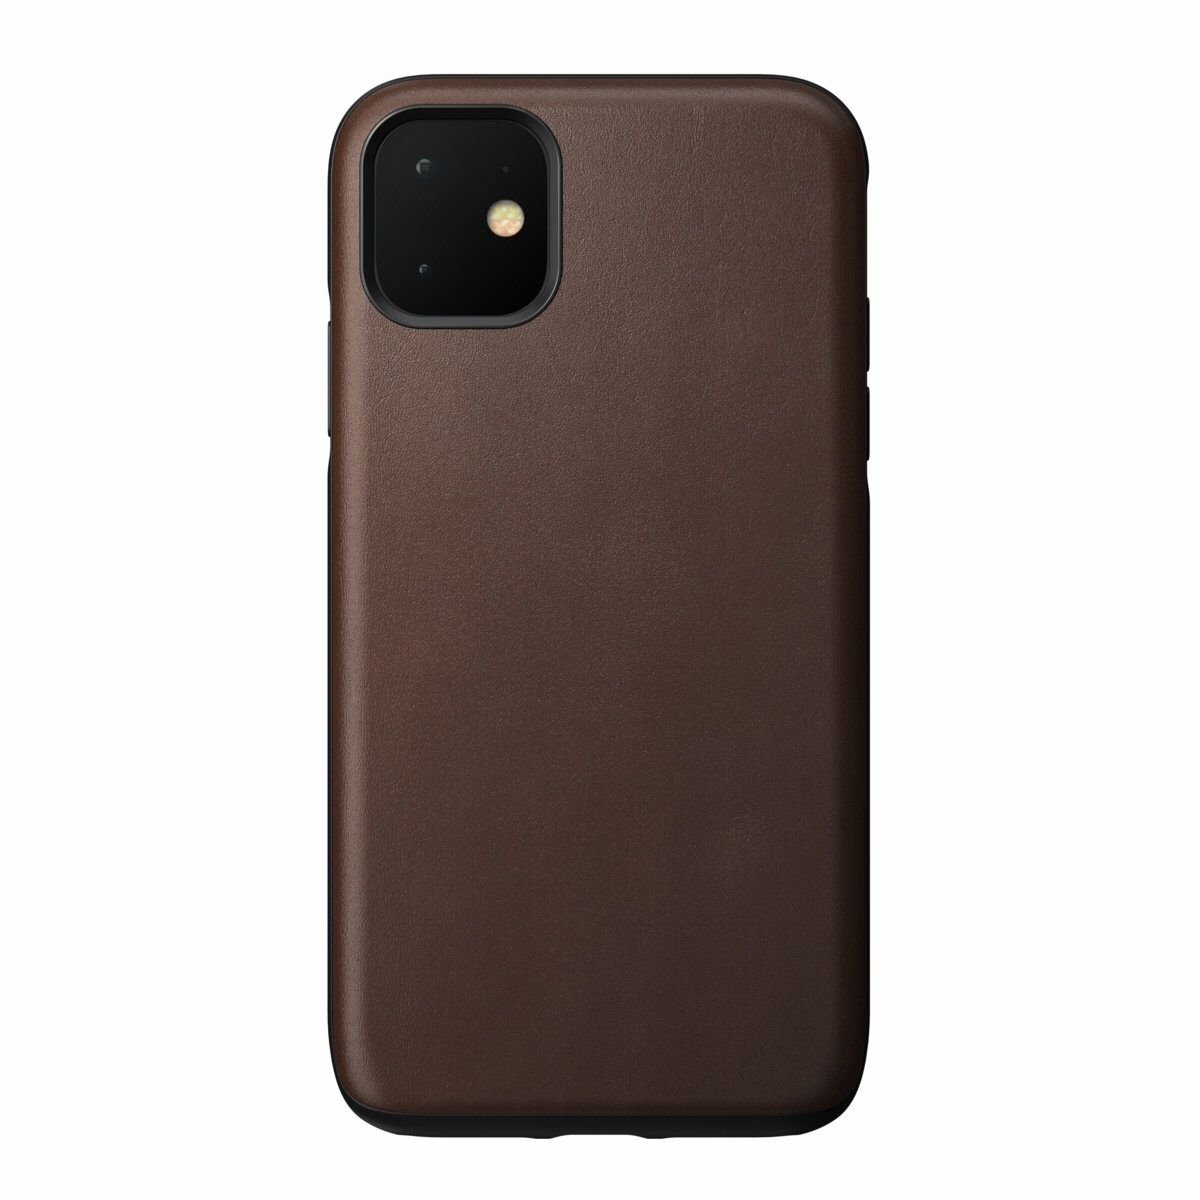 Nomad Case Leather Rugged Rustic Brown iPhone 11